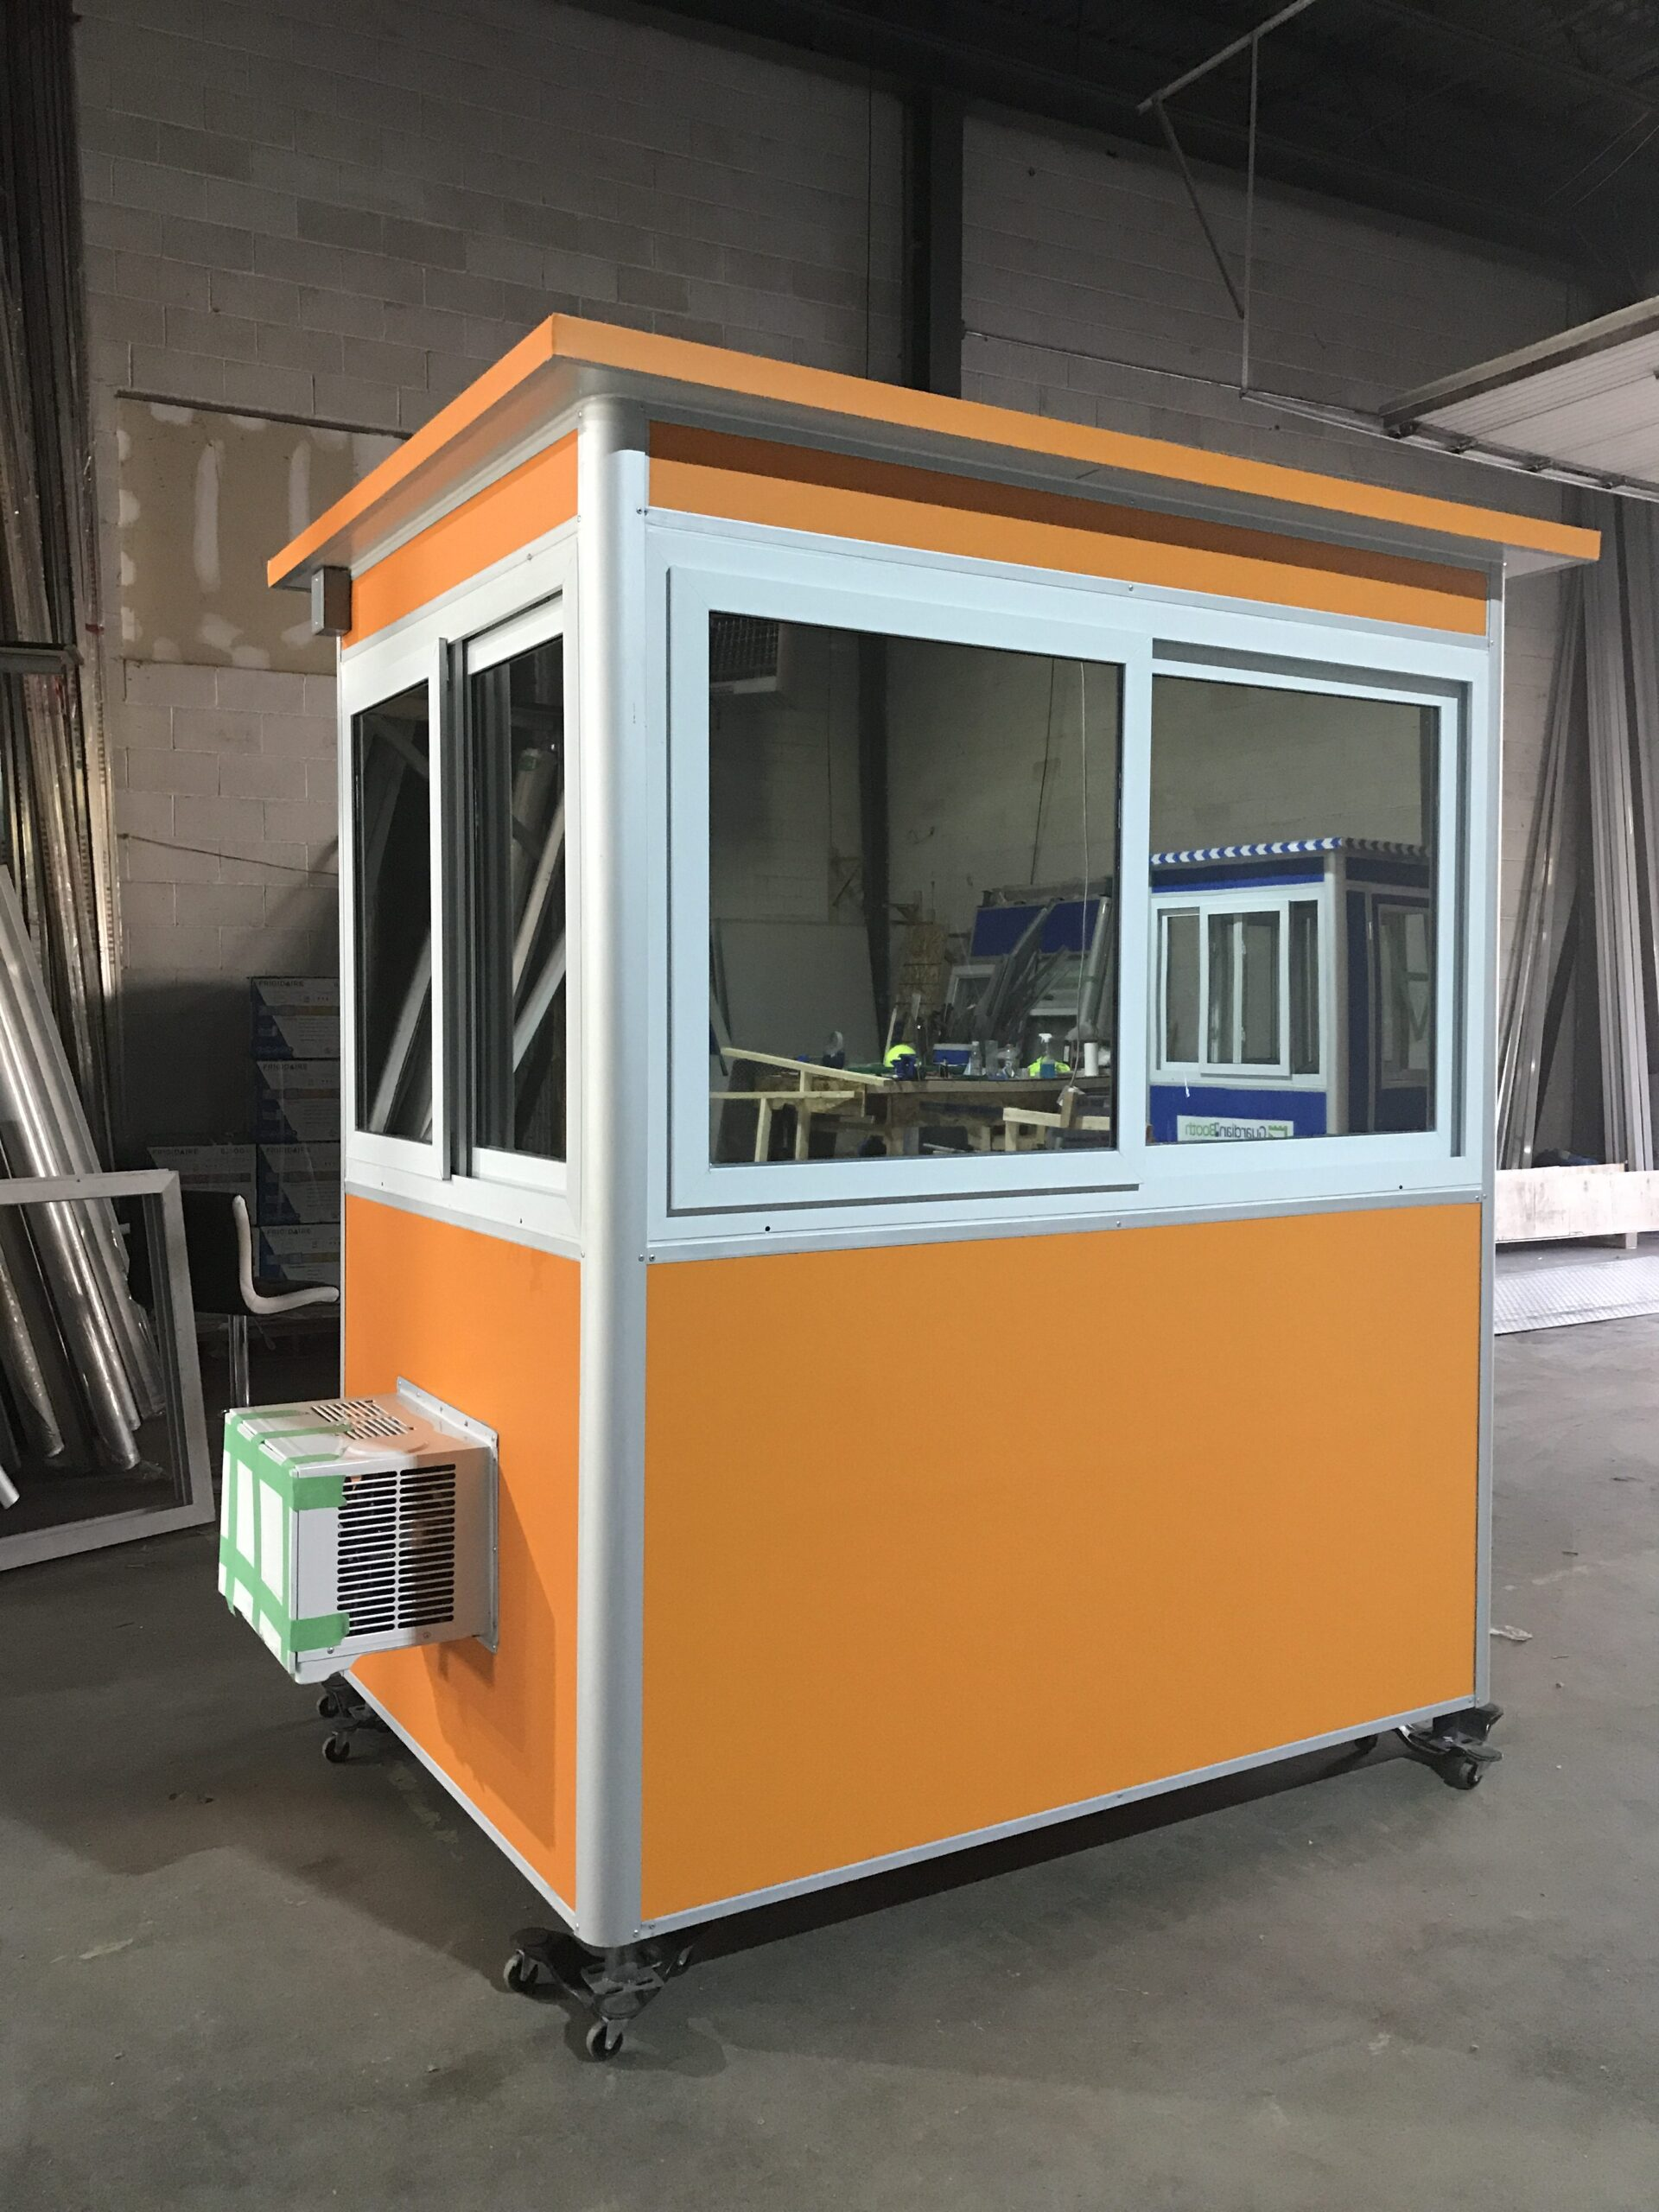 4x6 Hospital Security Booth in Pittsburgh, PA with Custom Exterior Color, Tinted Window, Built-in AC, Baseboard Heater, Electric Disconnect Switch